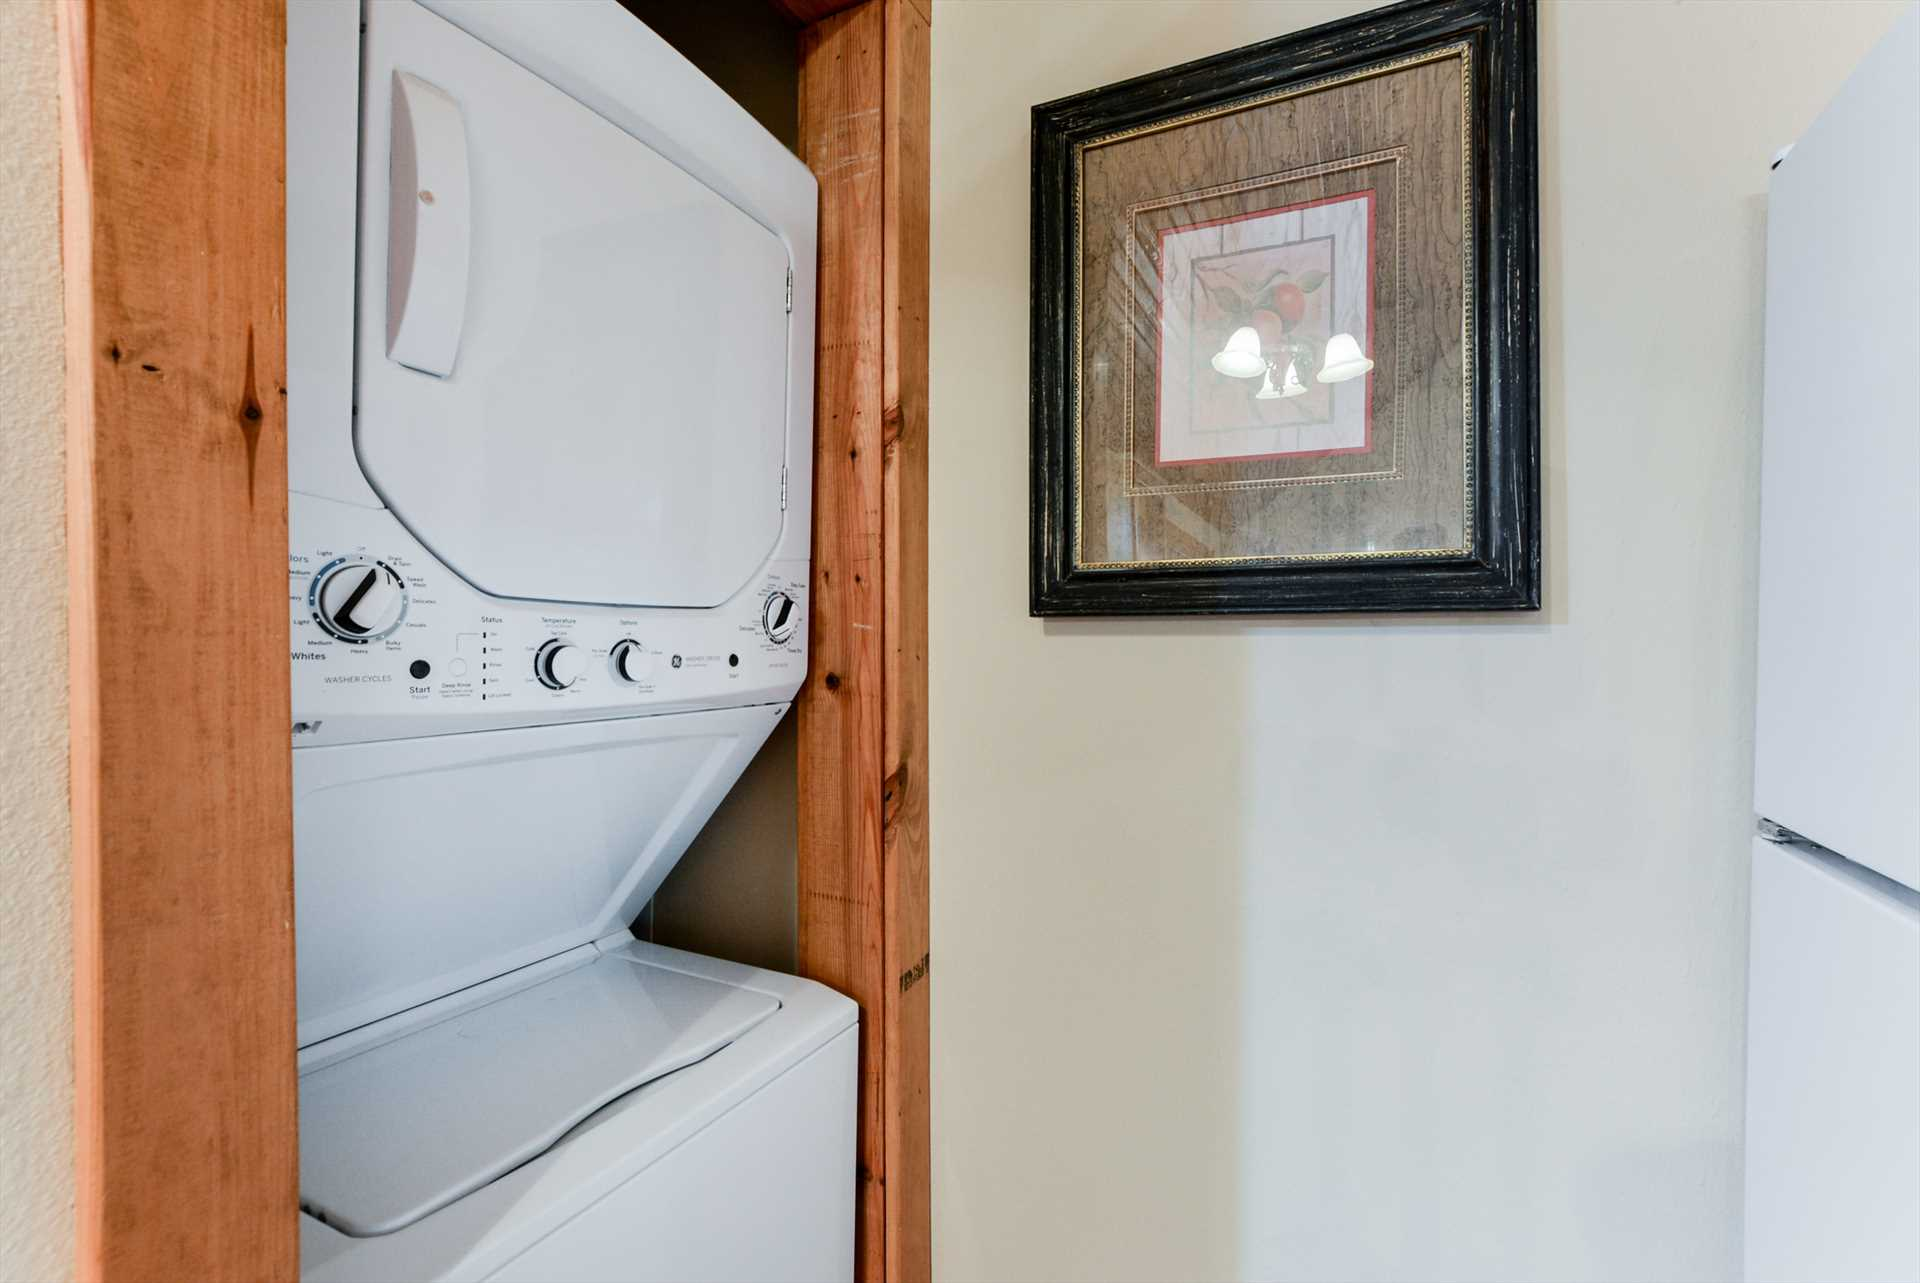 Laundry doesn't take a vacation - good thing the lodge inclu